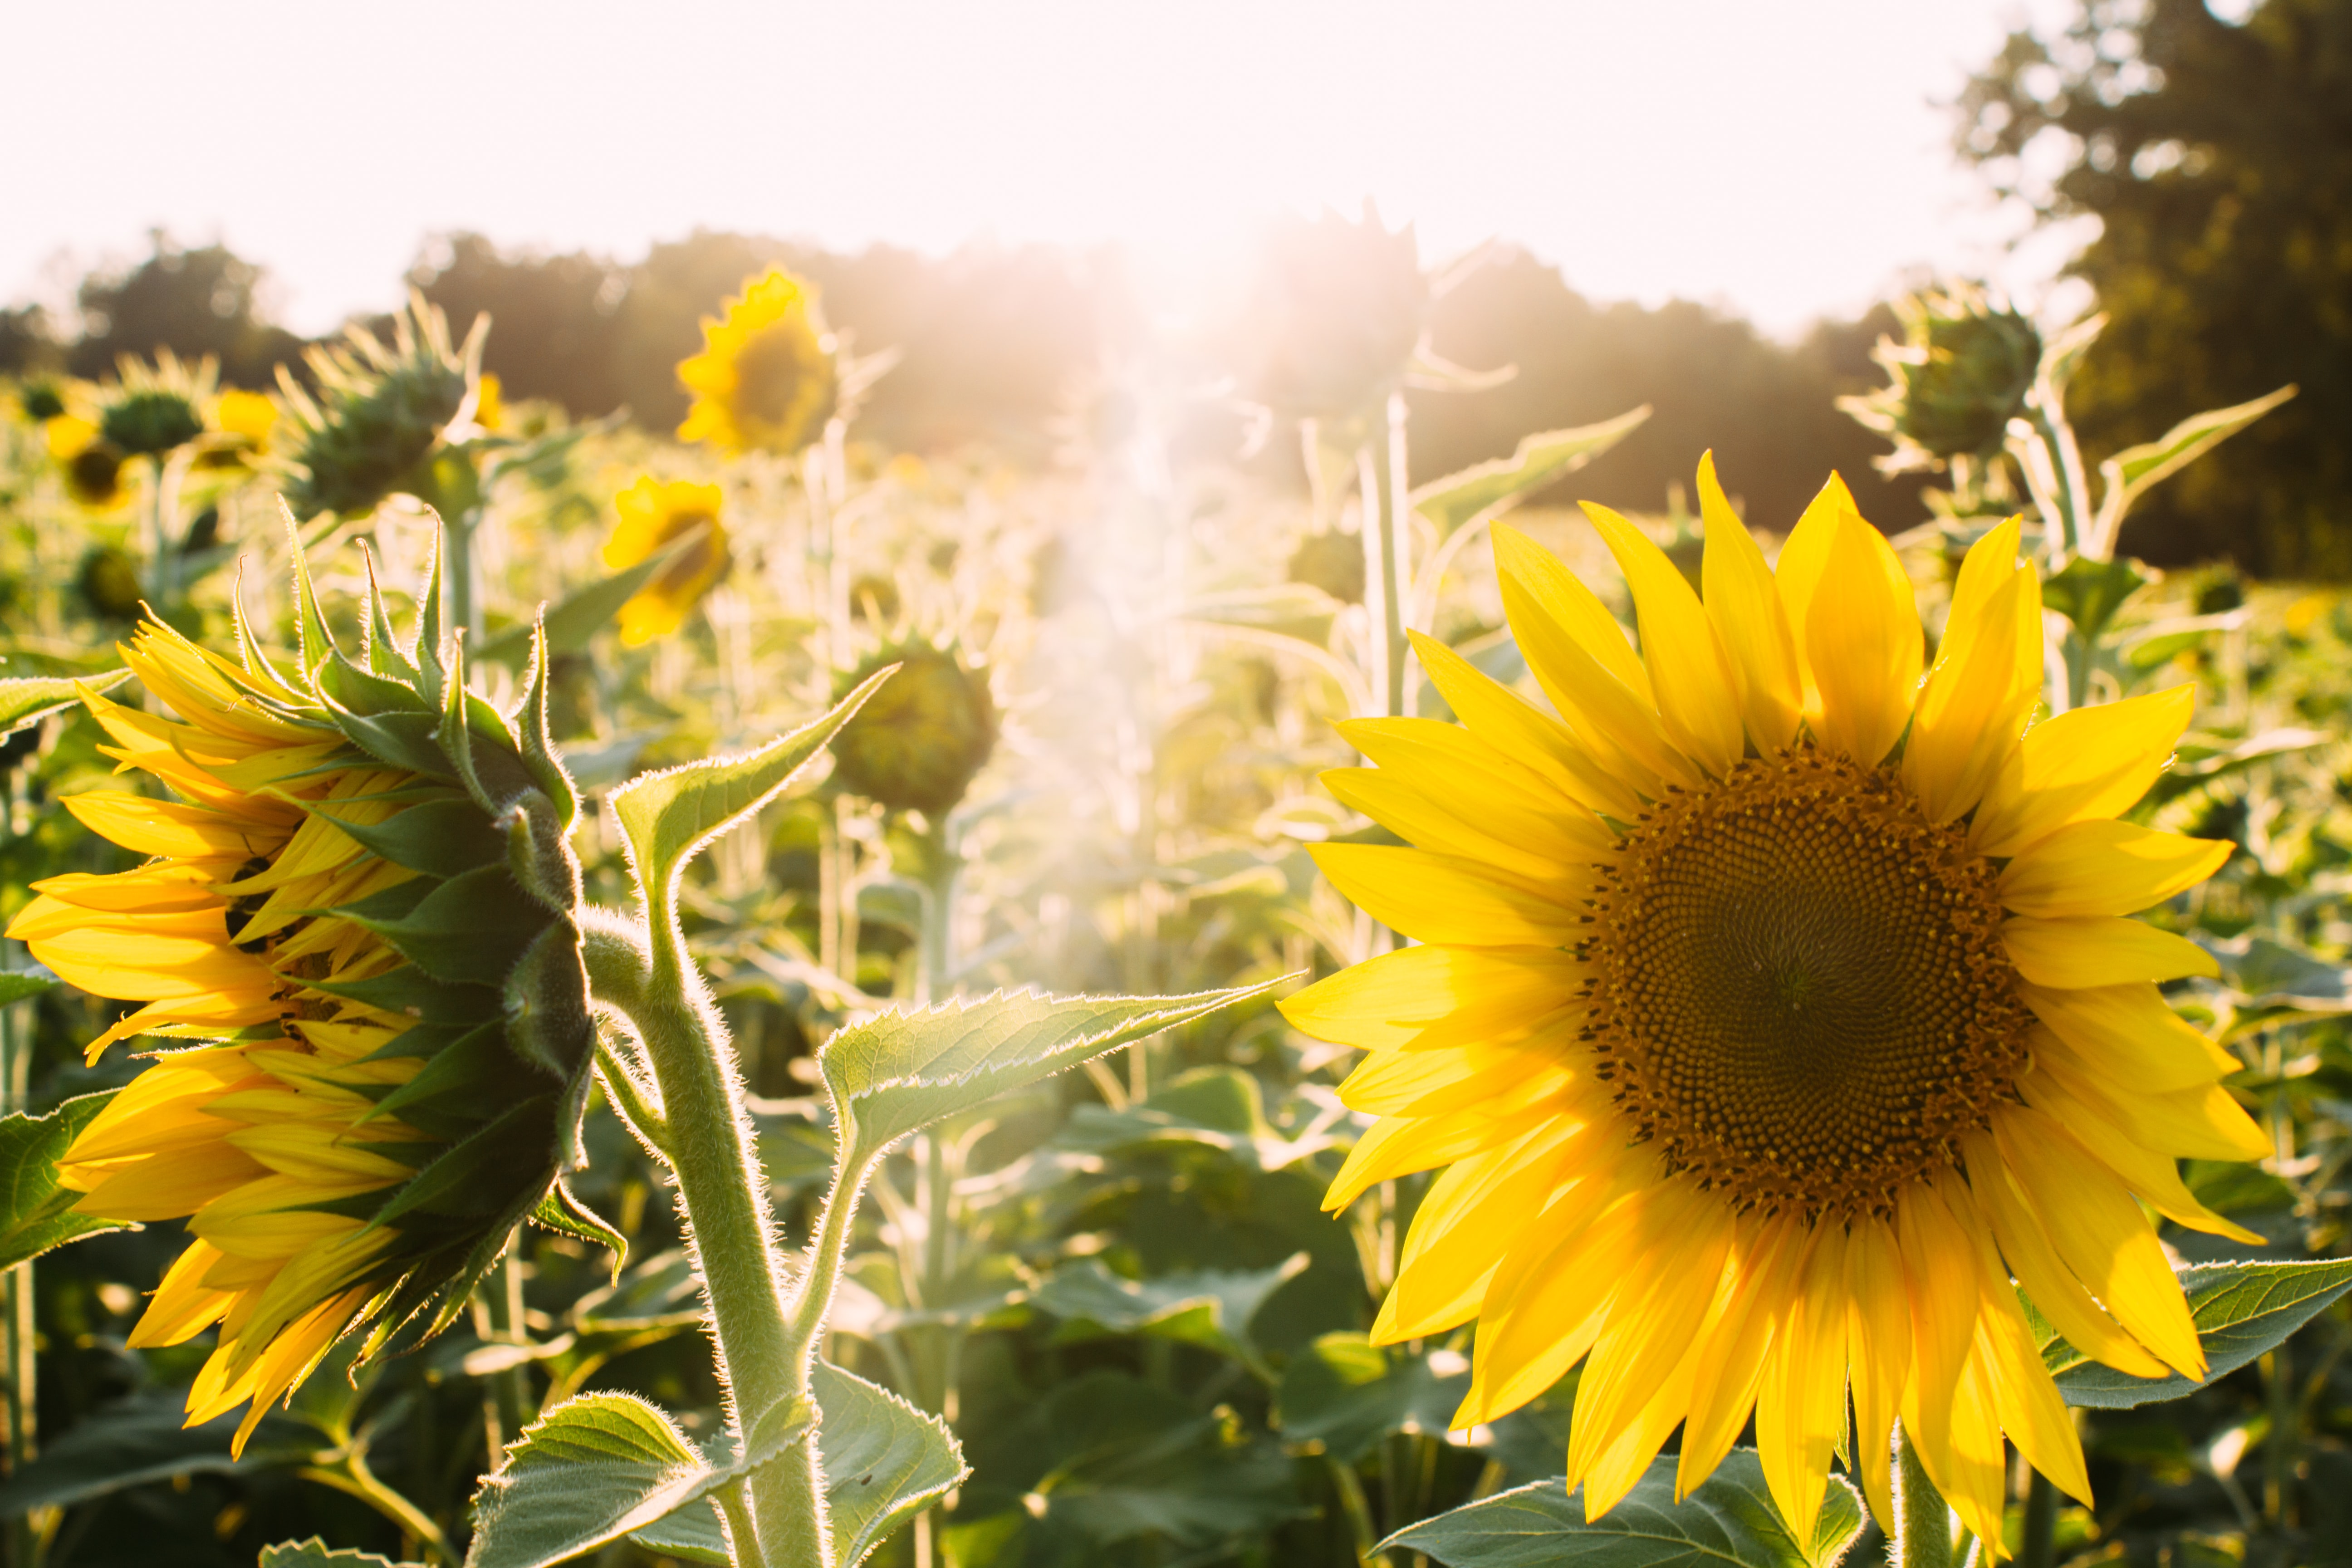 A bright shot of a field full of blooming sunflowers with a lens flare effect